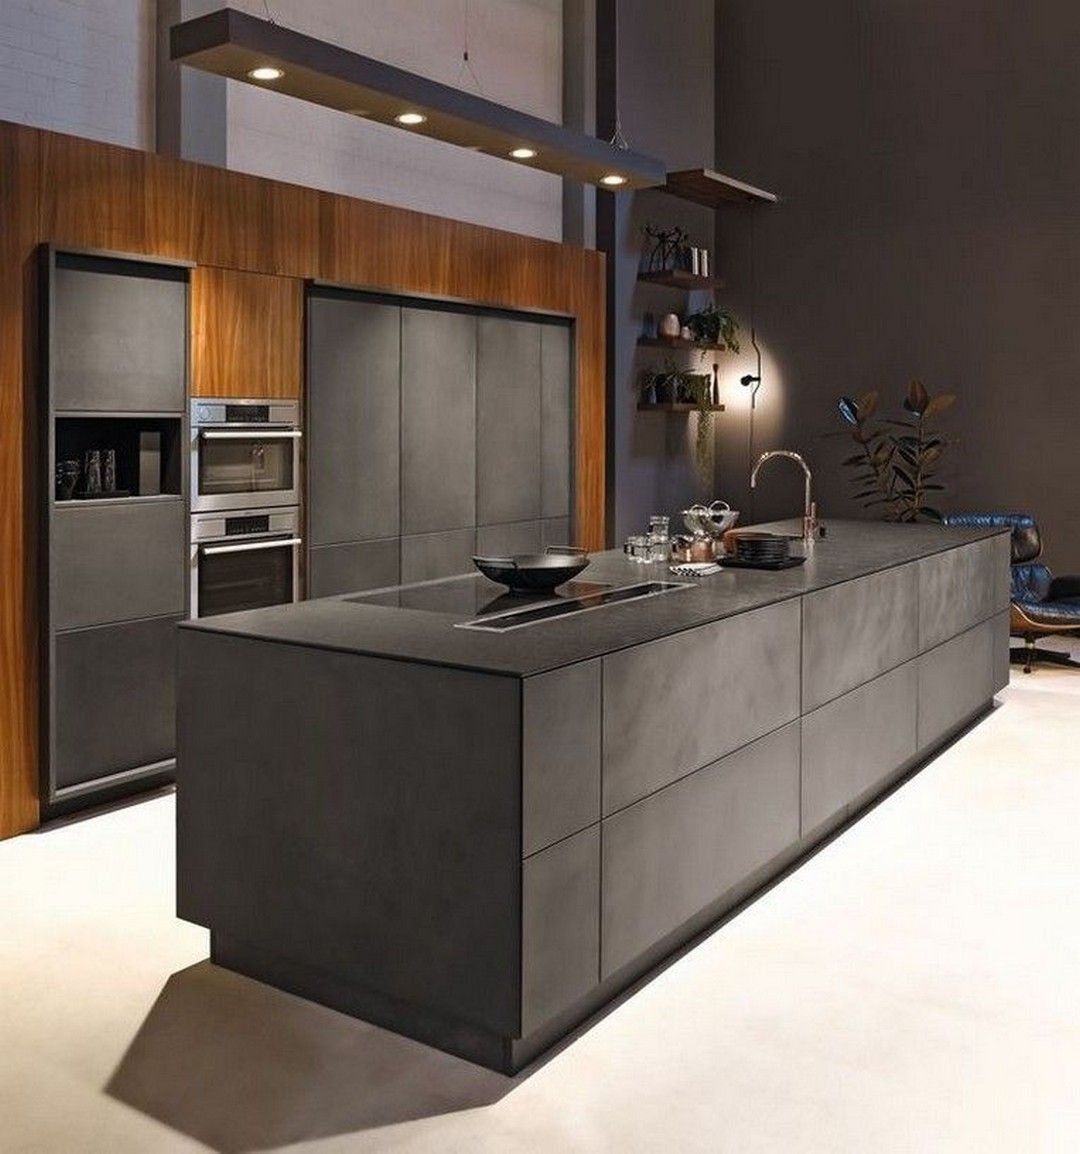 The 39 Best Black Kitchens Kitchen Trends You Need To See House Living Kitchen Design Styles Black Kitchen Island Luxury Kitchen Design